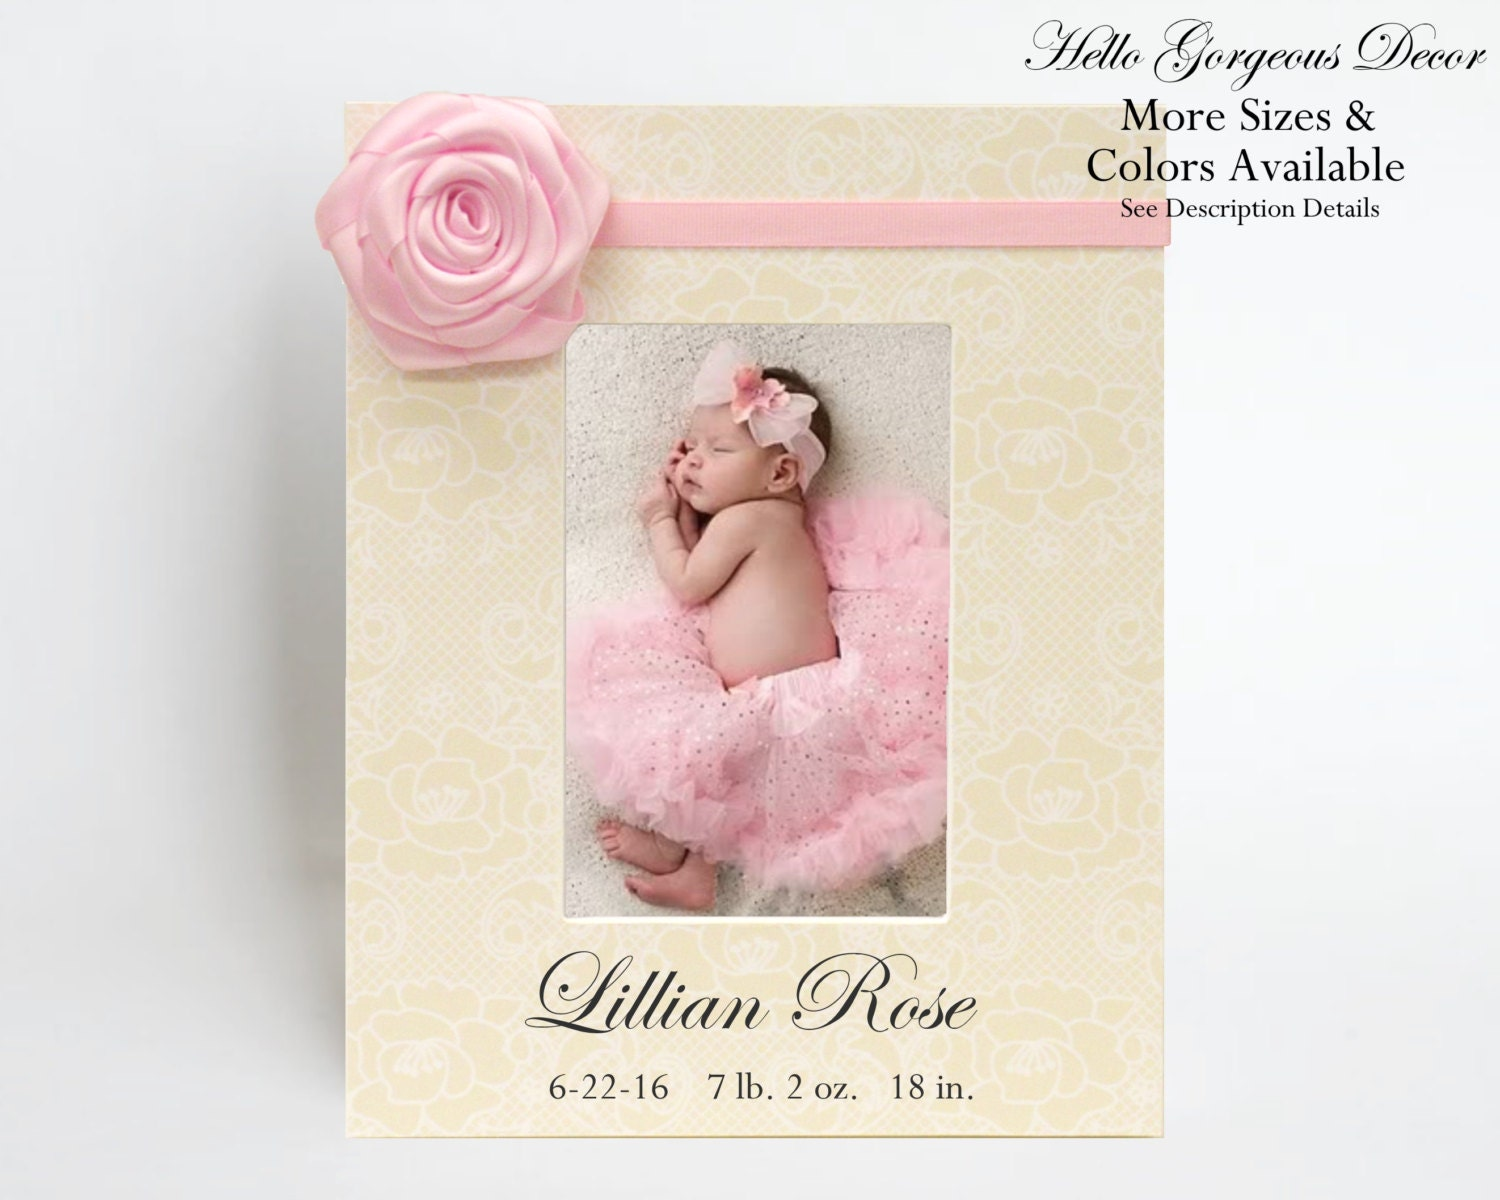 Baby gift personalized picture frame gift to newborn new baby new baby gift personalized picture frame gift to newborn new baby new parents present baby girl photo frame keepsake custom nursery decor ideas negle Image collections